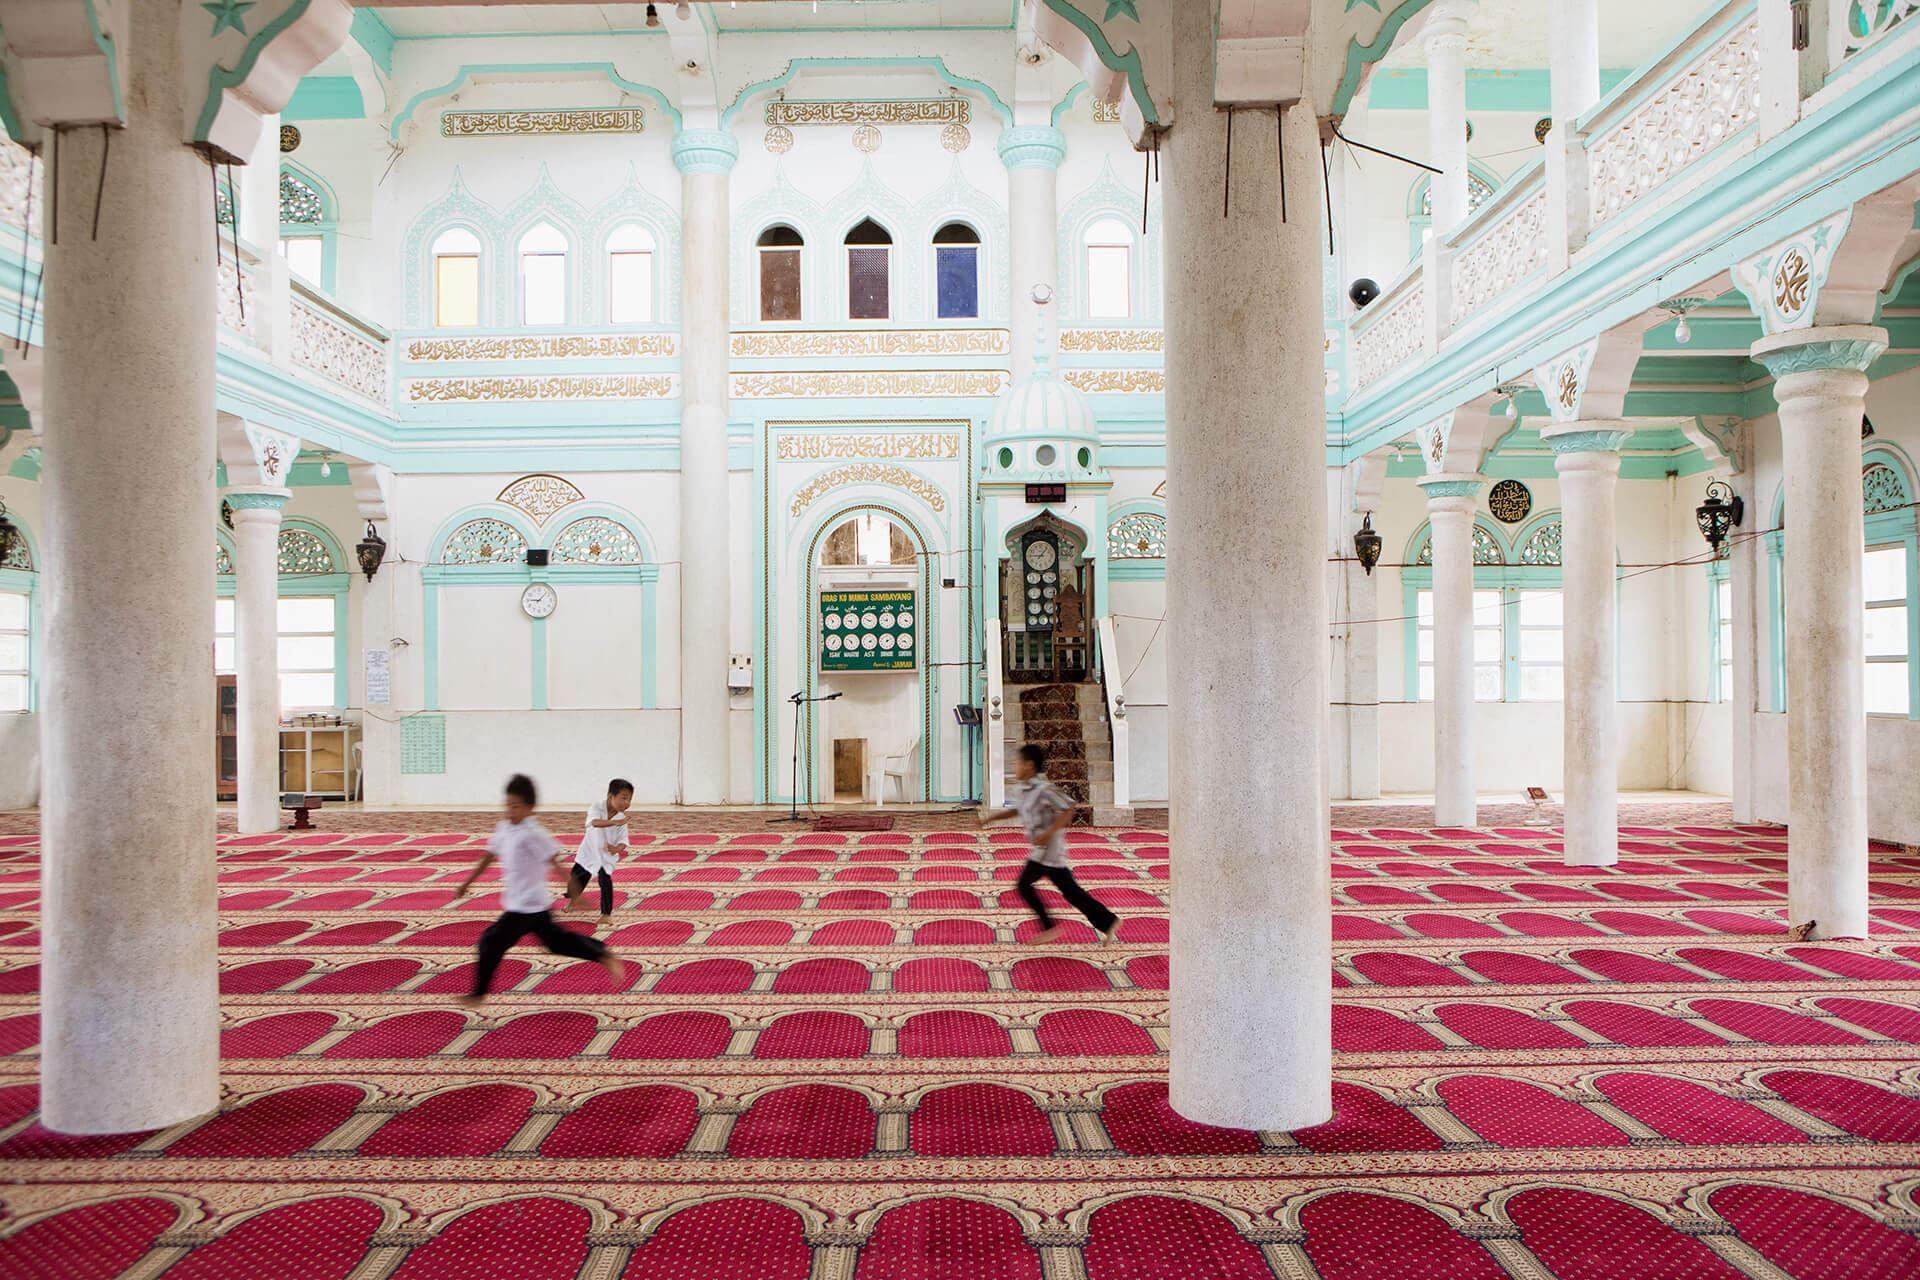 The interior of the Dalliman Central Masjid was built by Tugaya's own craftsmen.